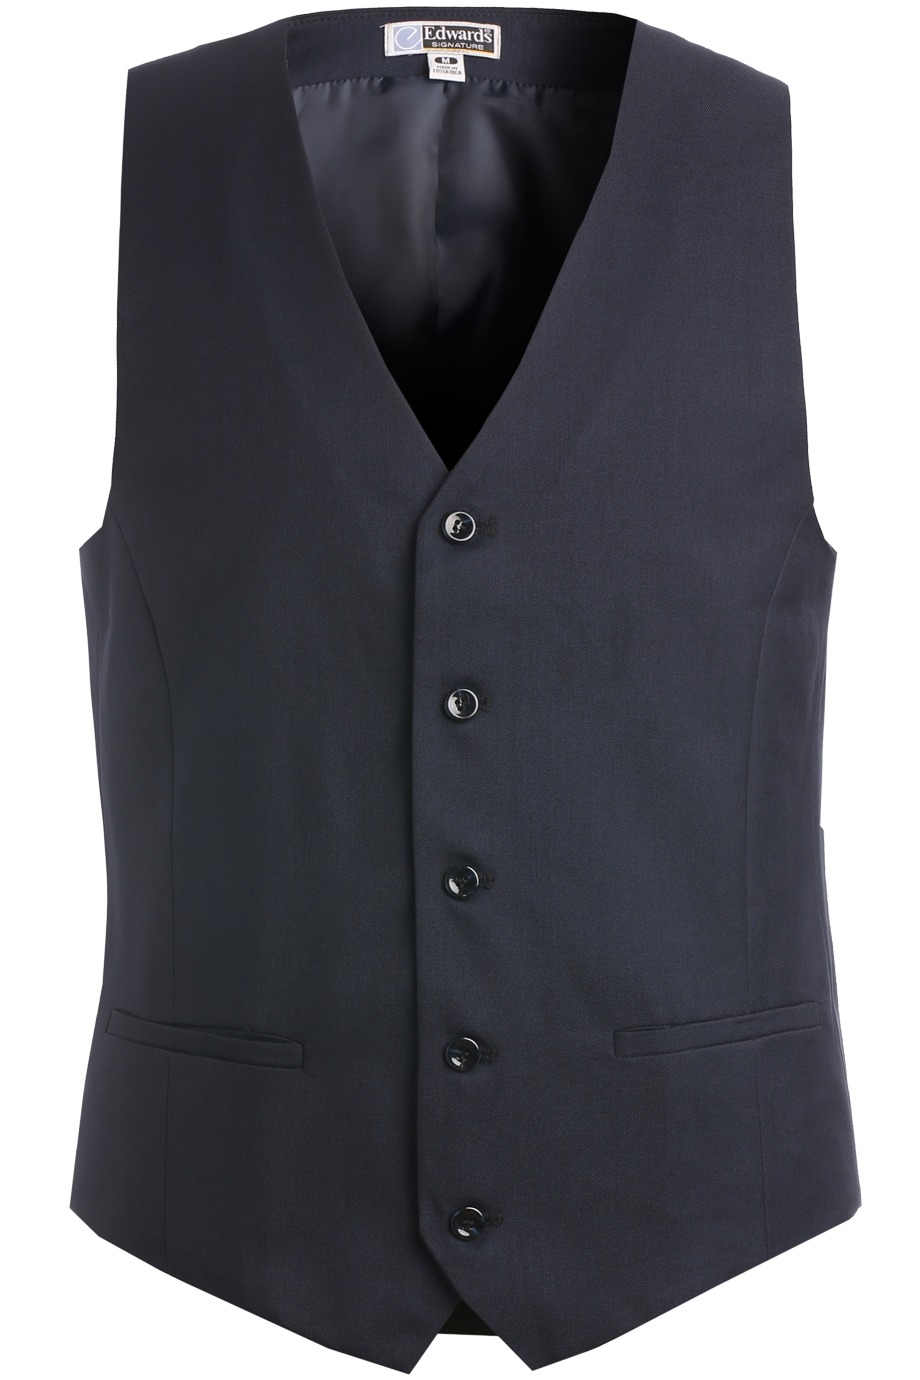 Edwards Garment 4525 - Synergy Washable Vest